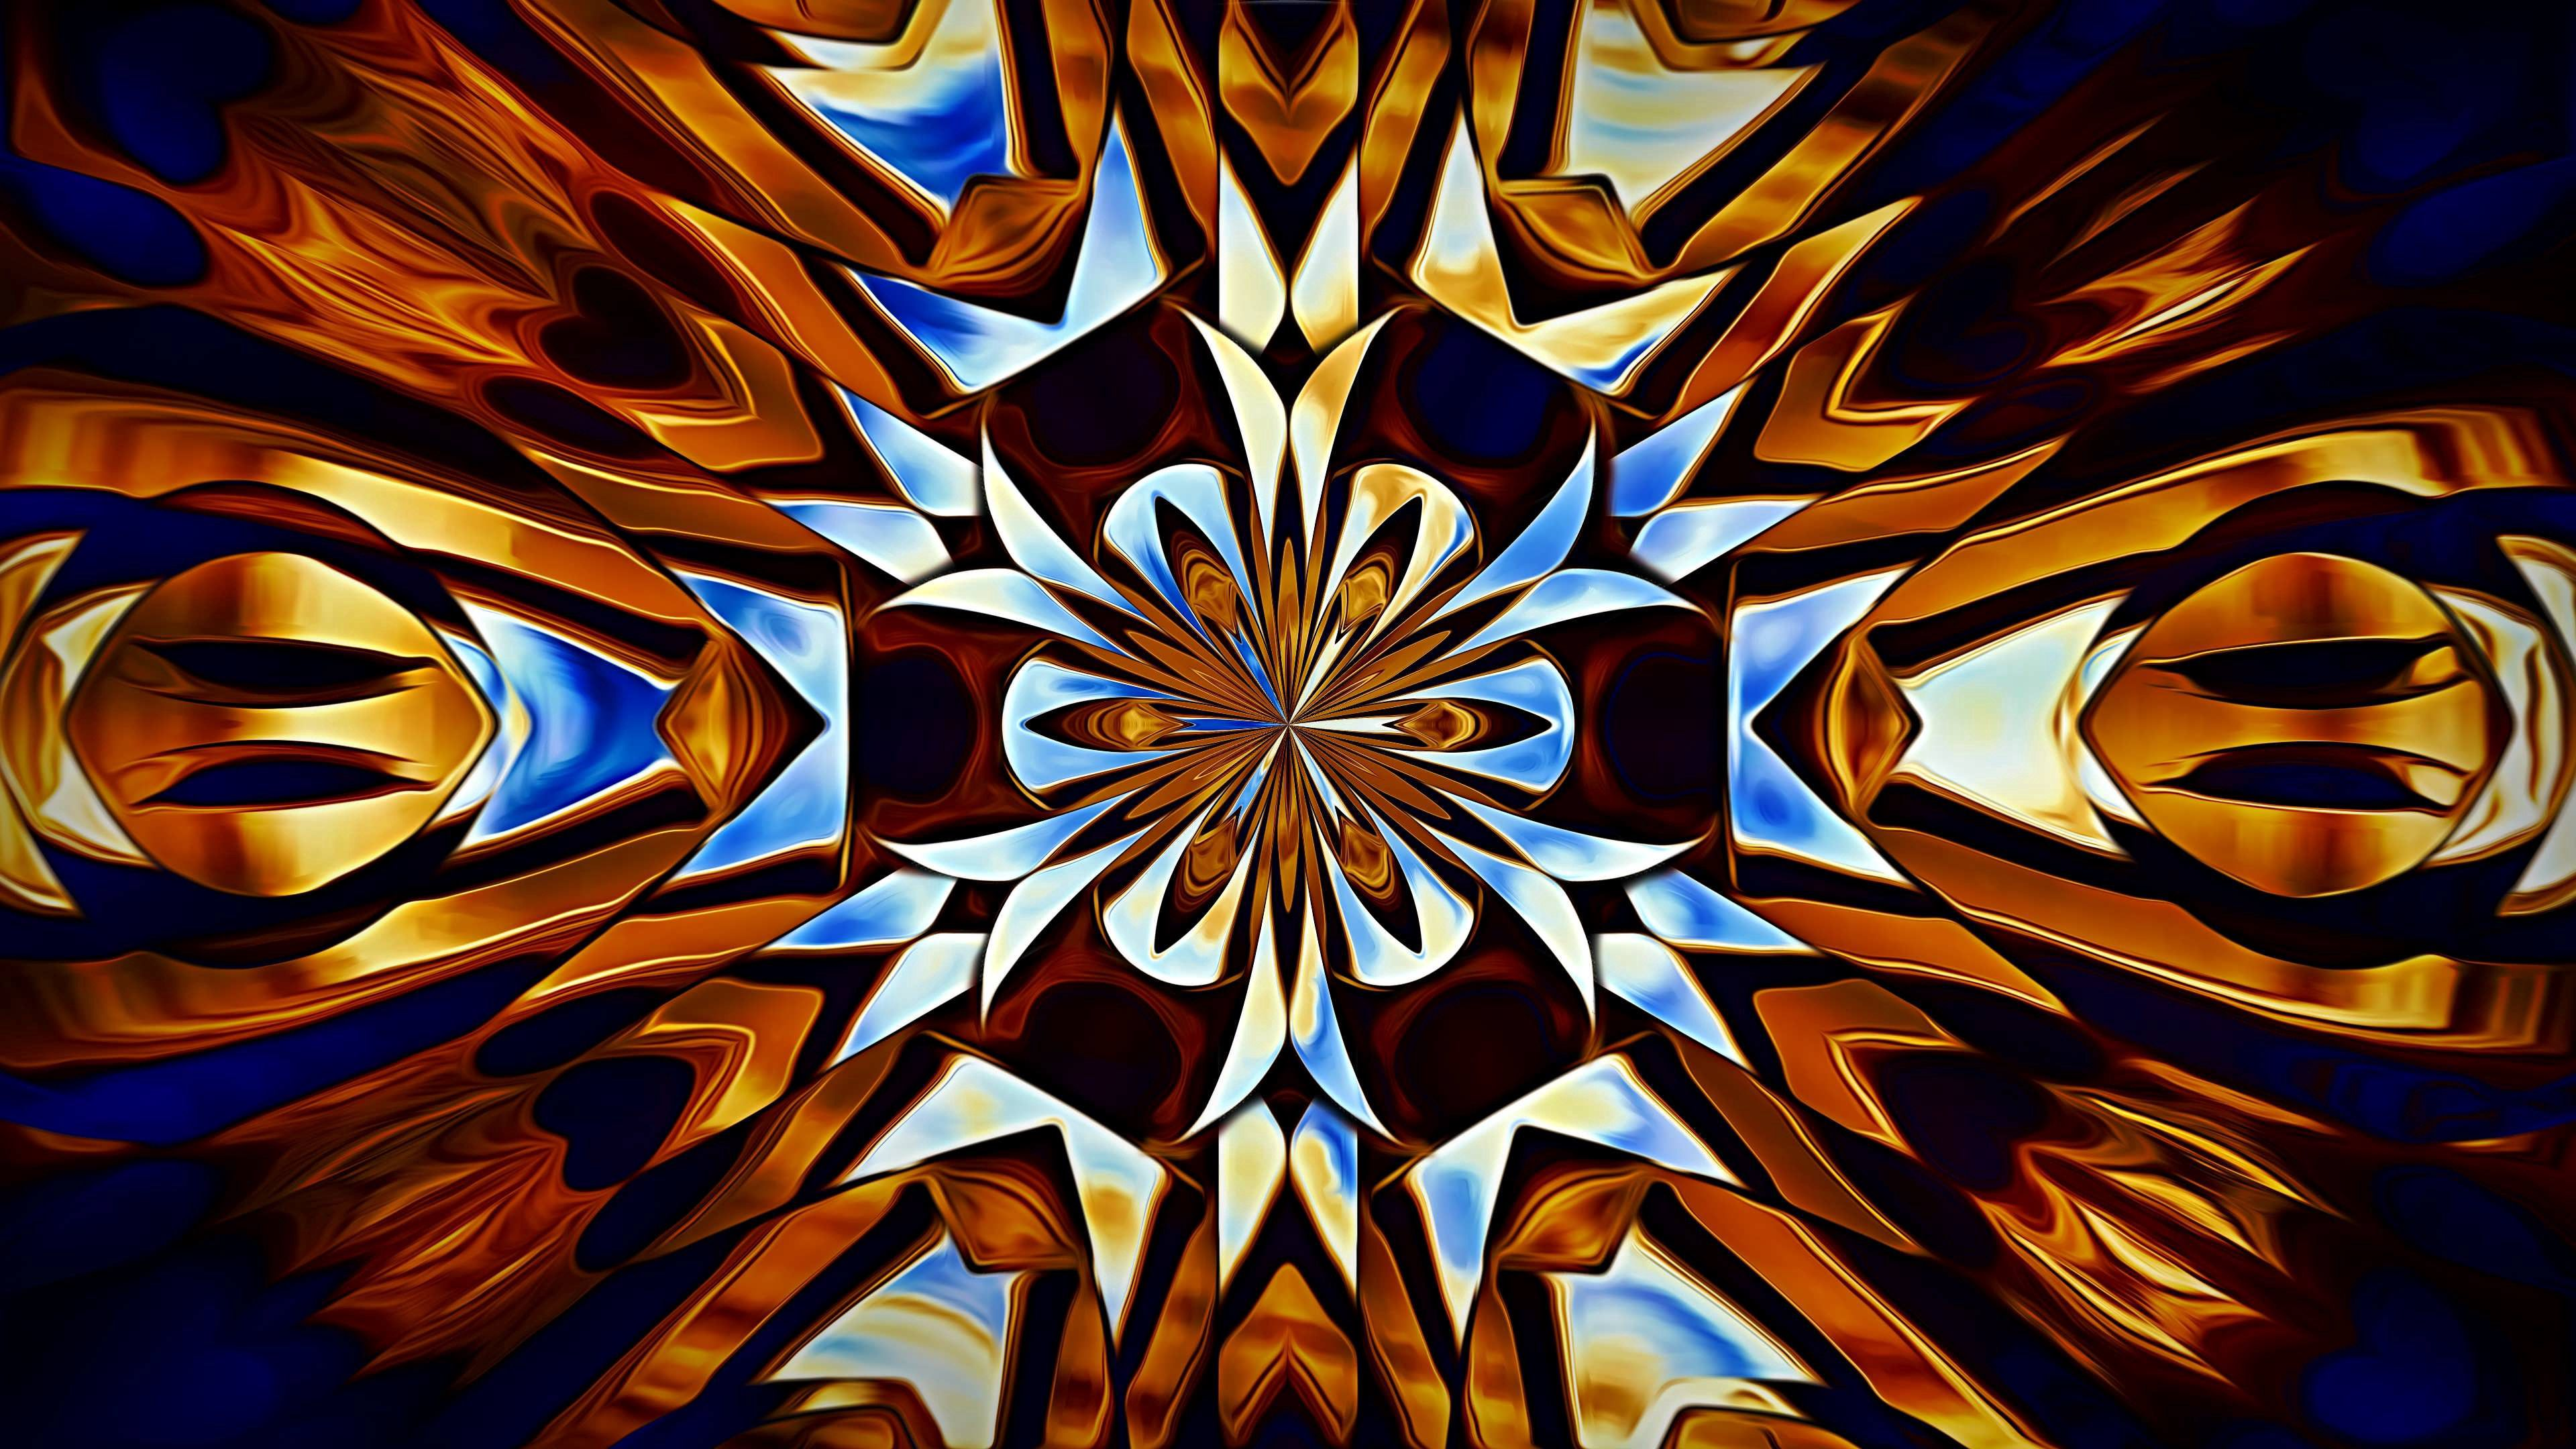 79766 download wallpaper Abstract, Fractal, Pattern, Symmetry, Kaleidoscope screensavers and pictures for free